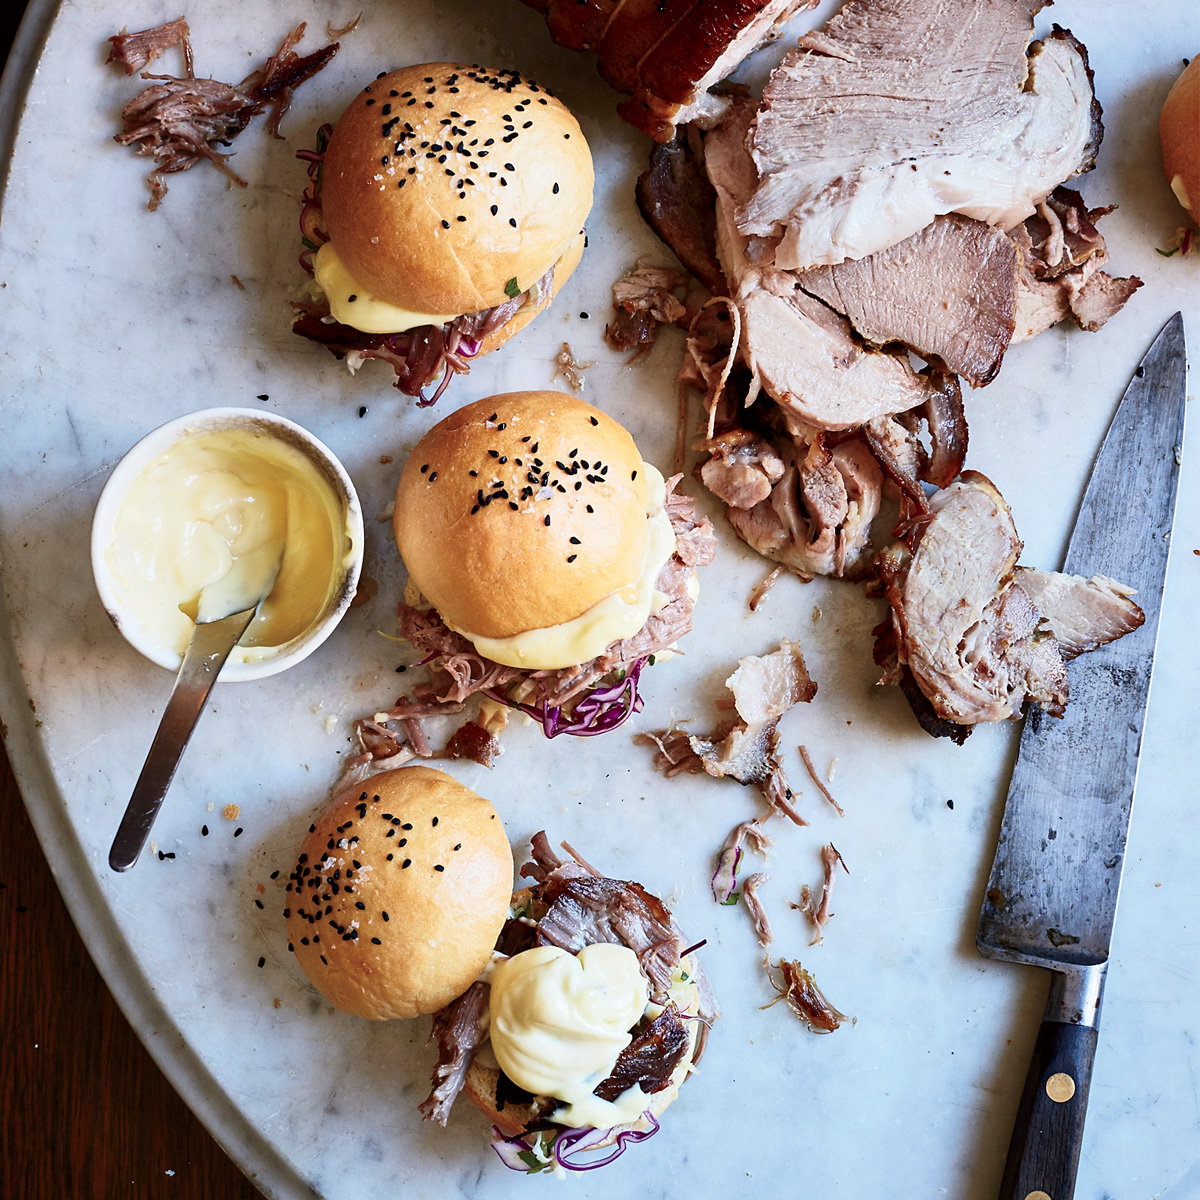 Roast Pork Sandwiches with Three-Cabbage Slaw and Aioli